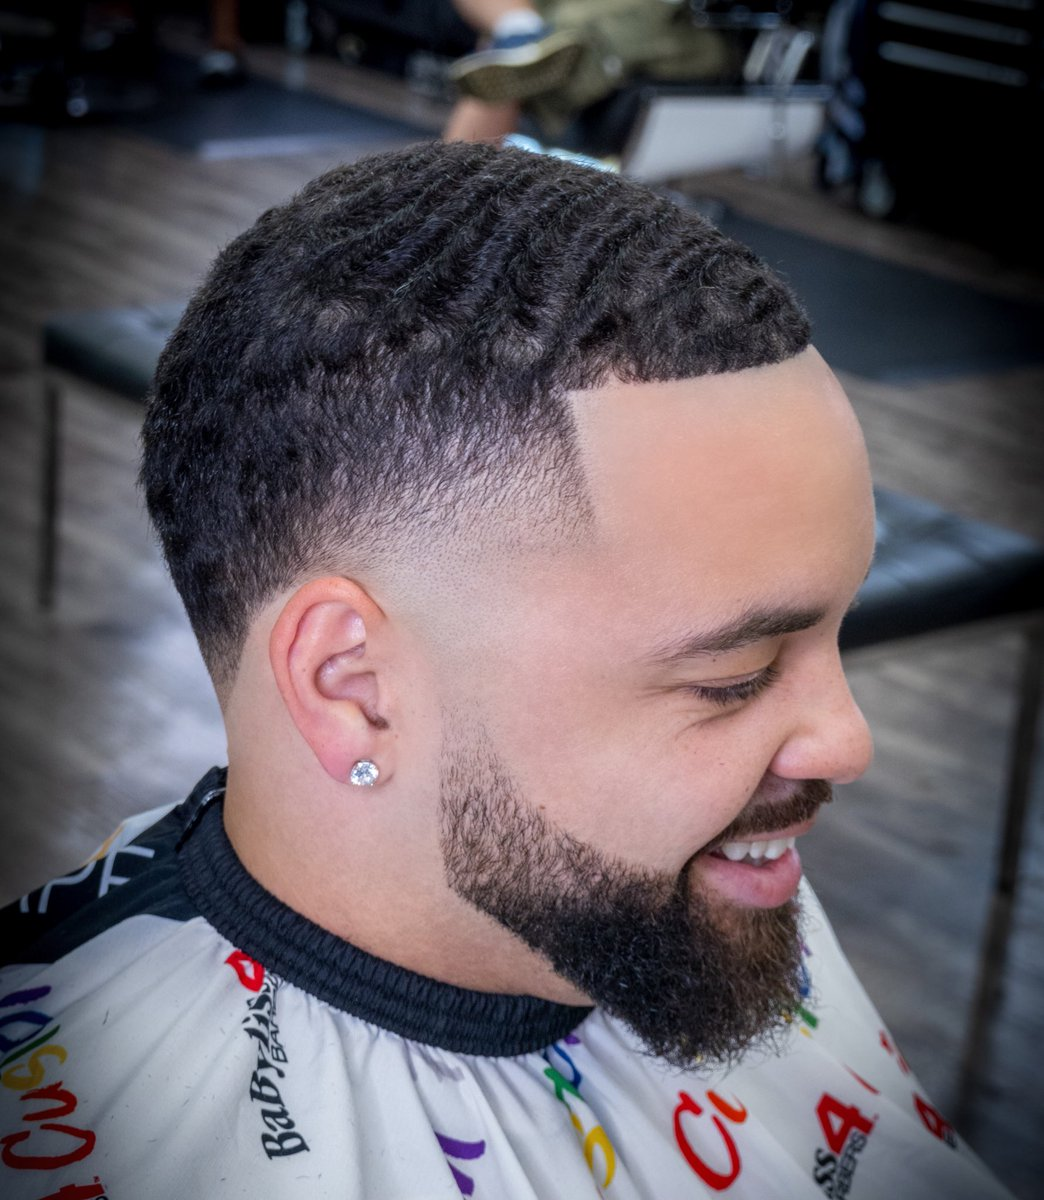 Always great to put smiles on a clients face during these crazy times #GinoTheBarber #BaByliss4Barbers #BaBylissPRO #Barberology #BaBylissPRO_Barberologypic.twitter.com/1AUcOgFj5r – at The Barbershop Tampa